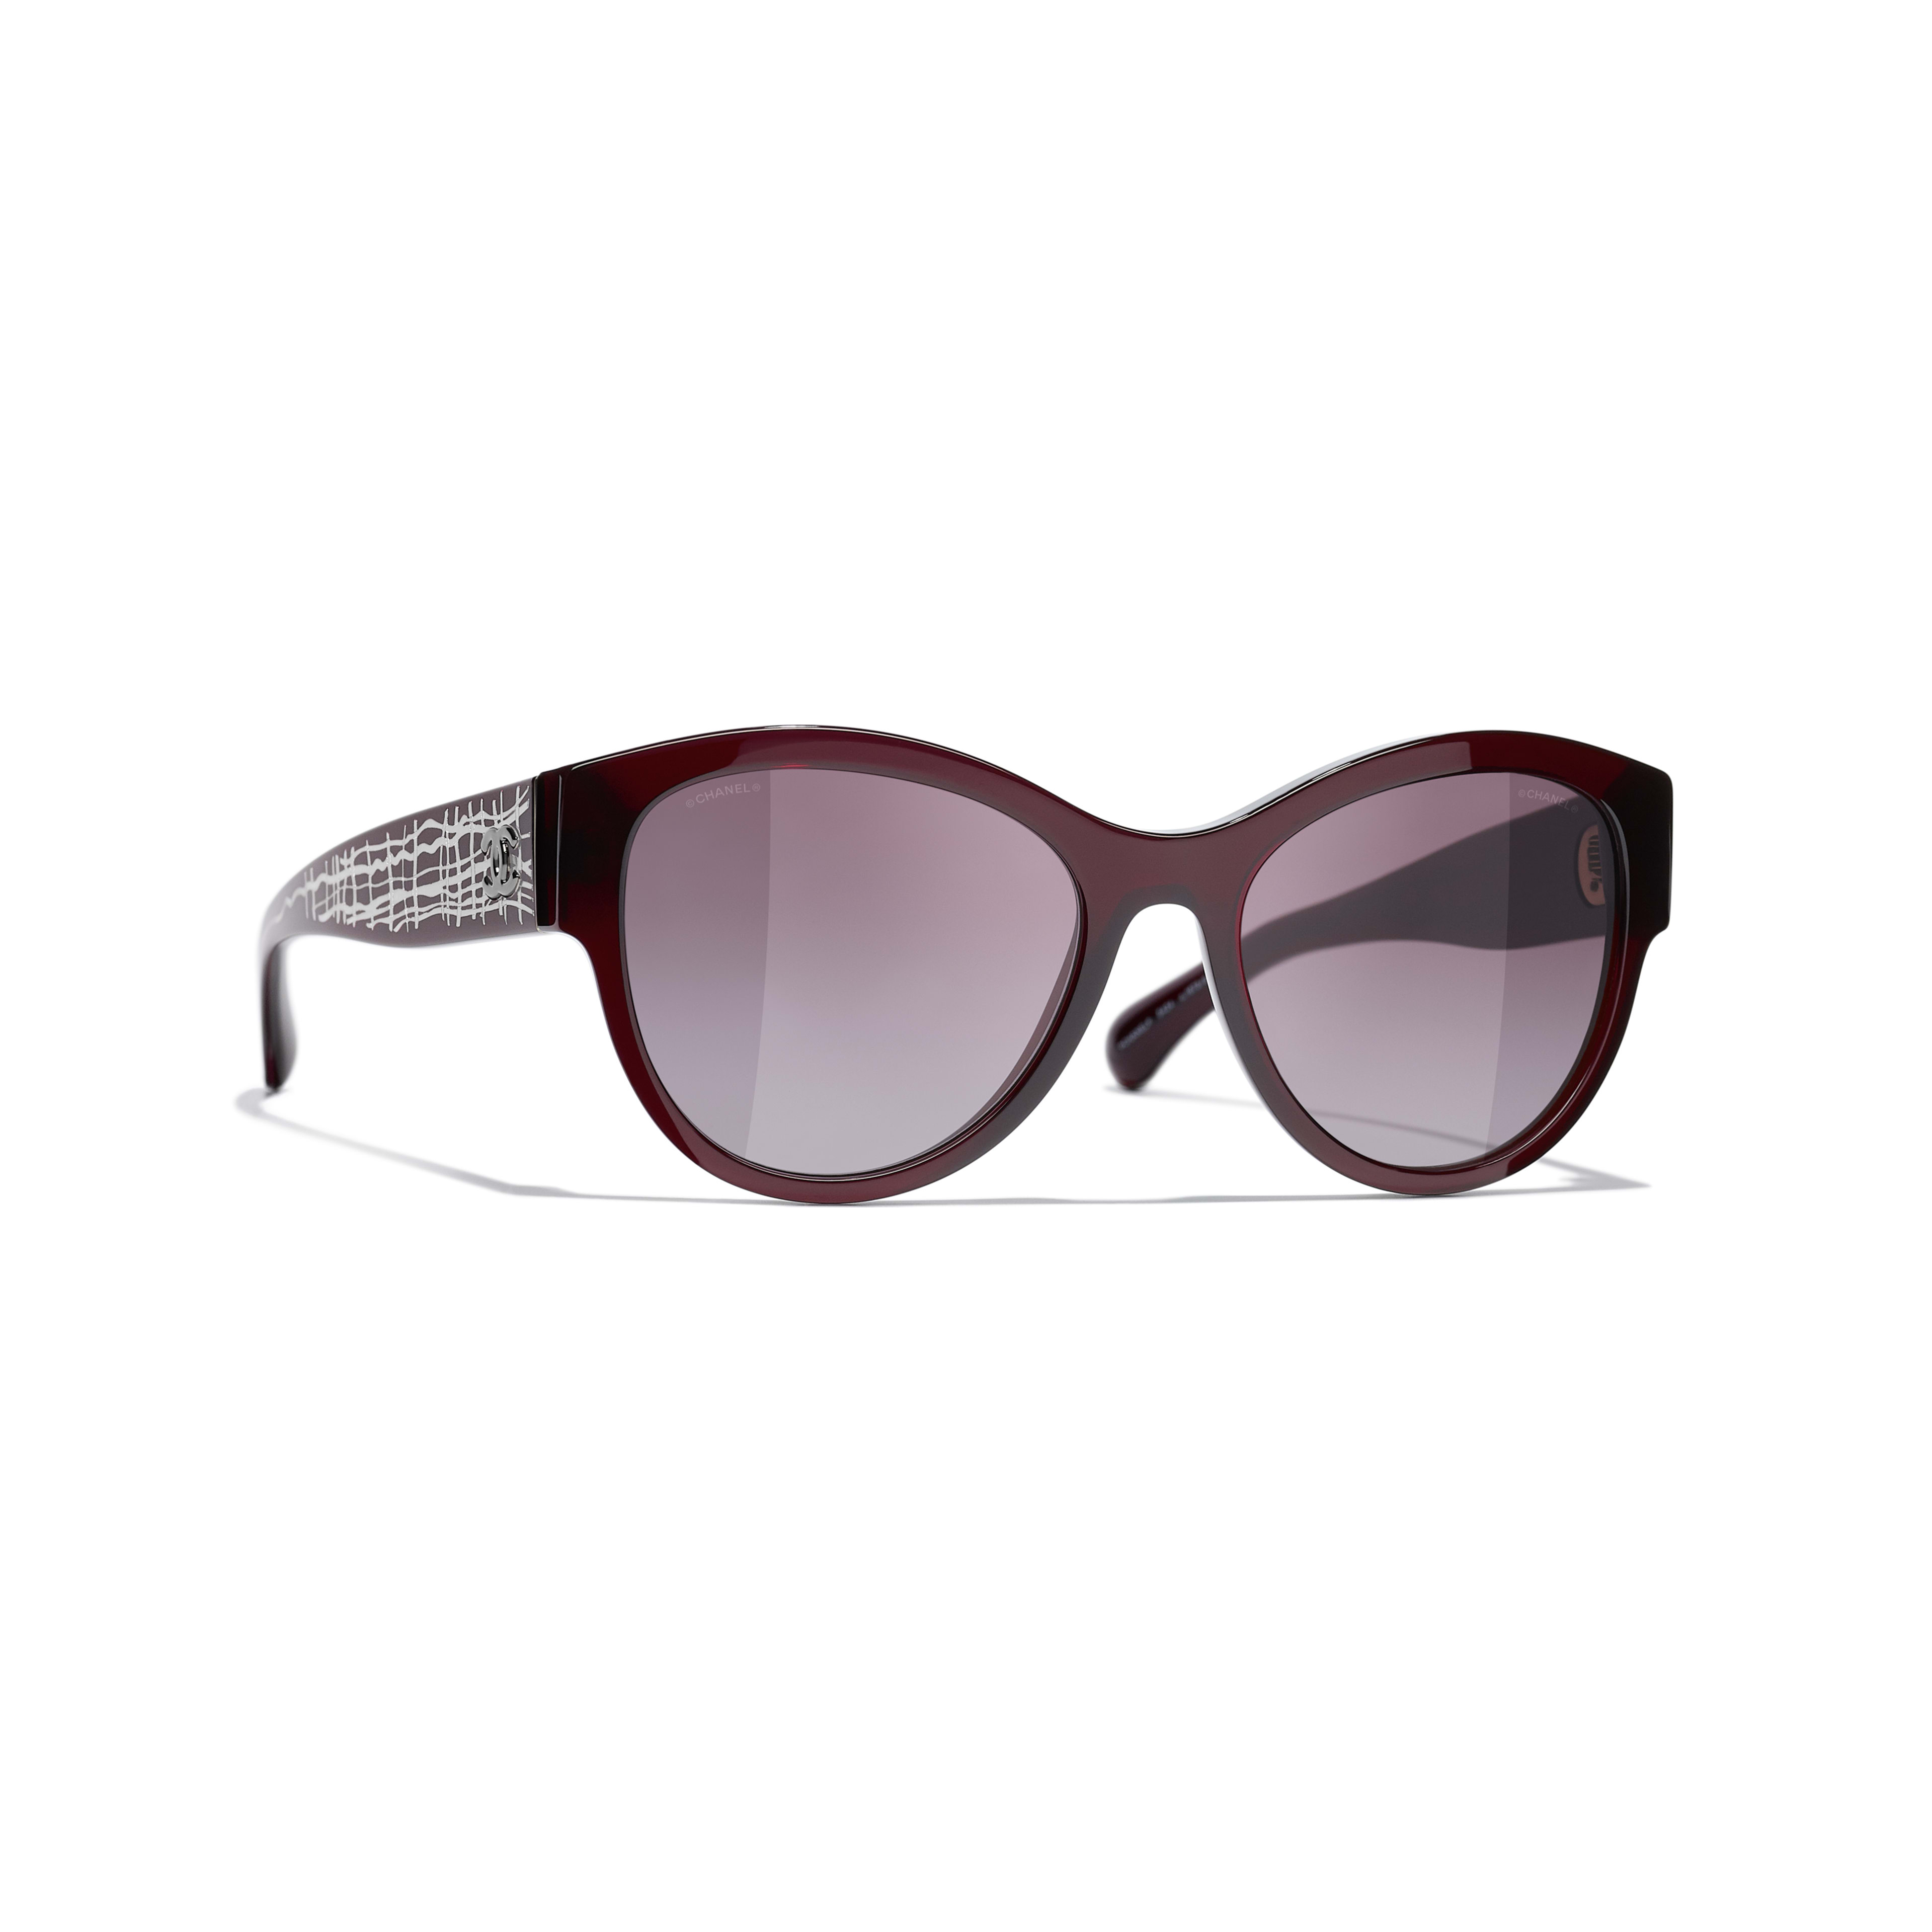 Pantos Sunglasses - Dark Red - Acetate & Metal - CHANEL - Default view - see standard sized version